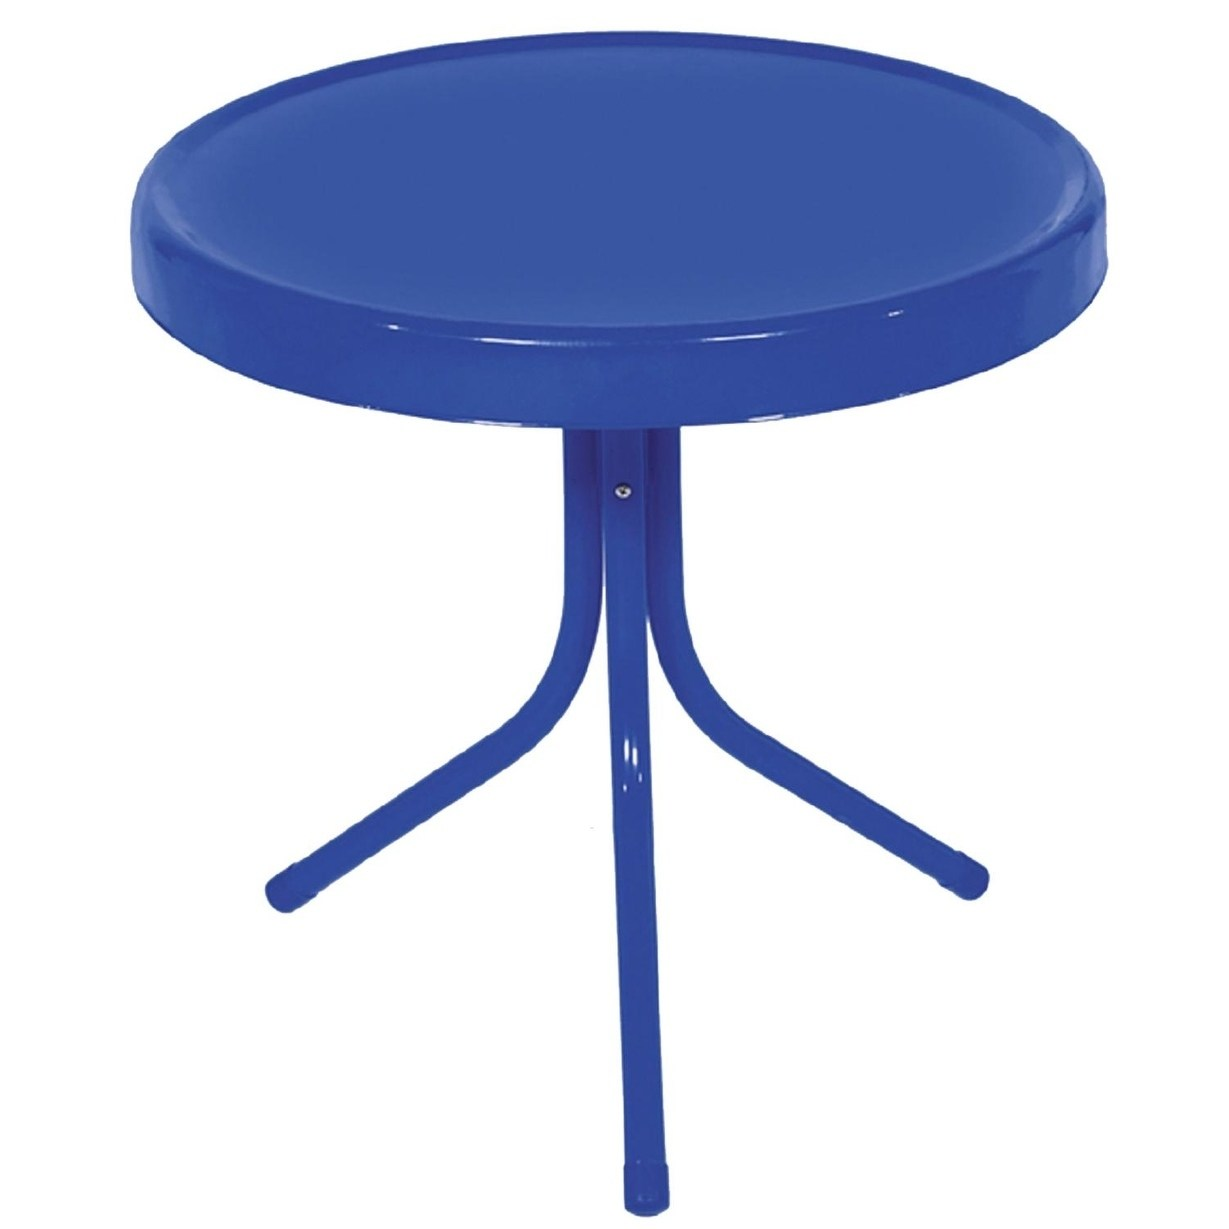 electric blue retro metal tulip outdoor side table free accent shipping today luau cupcakes red butler coffee charging station light bulb changer pole battery lamps patio